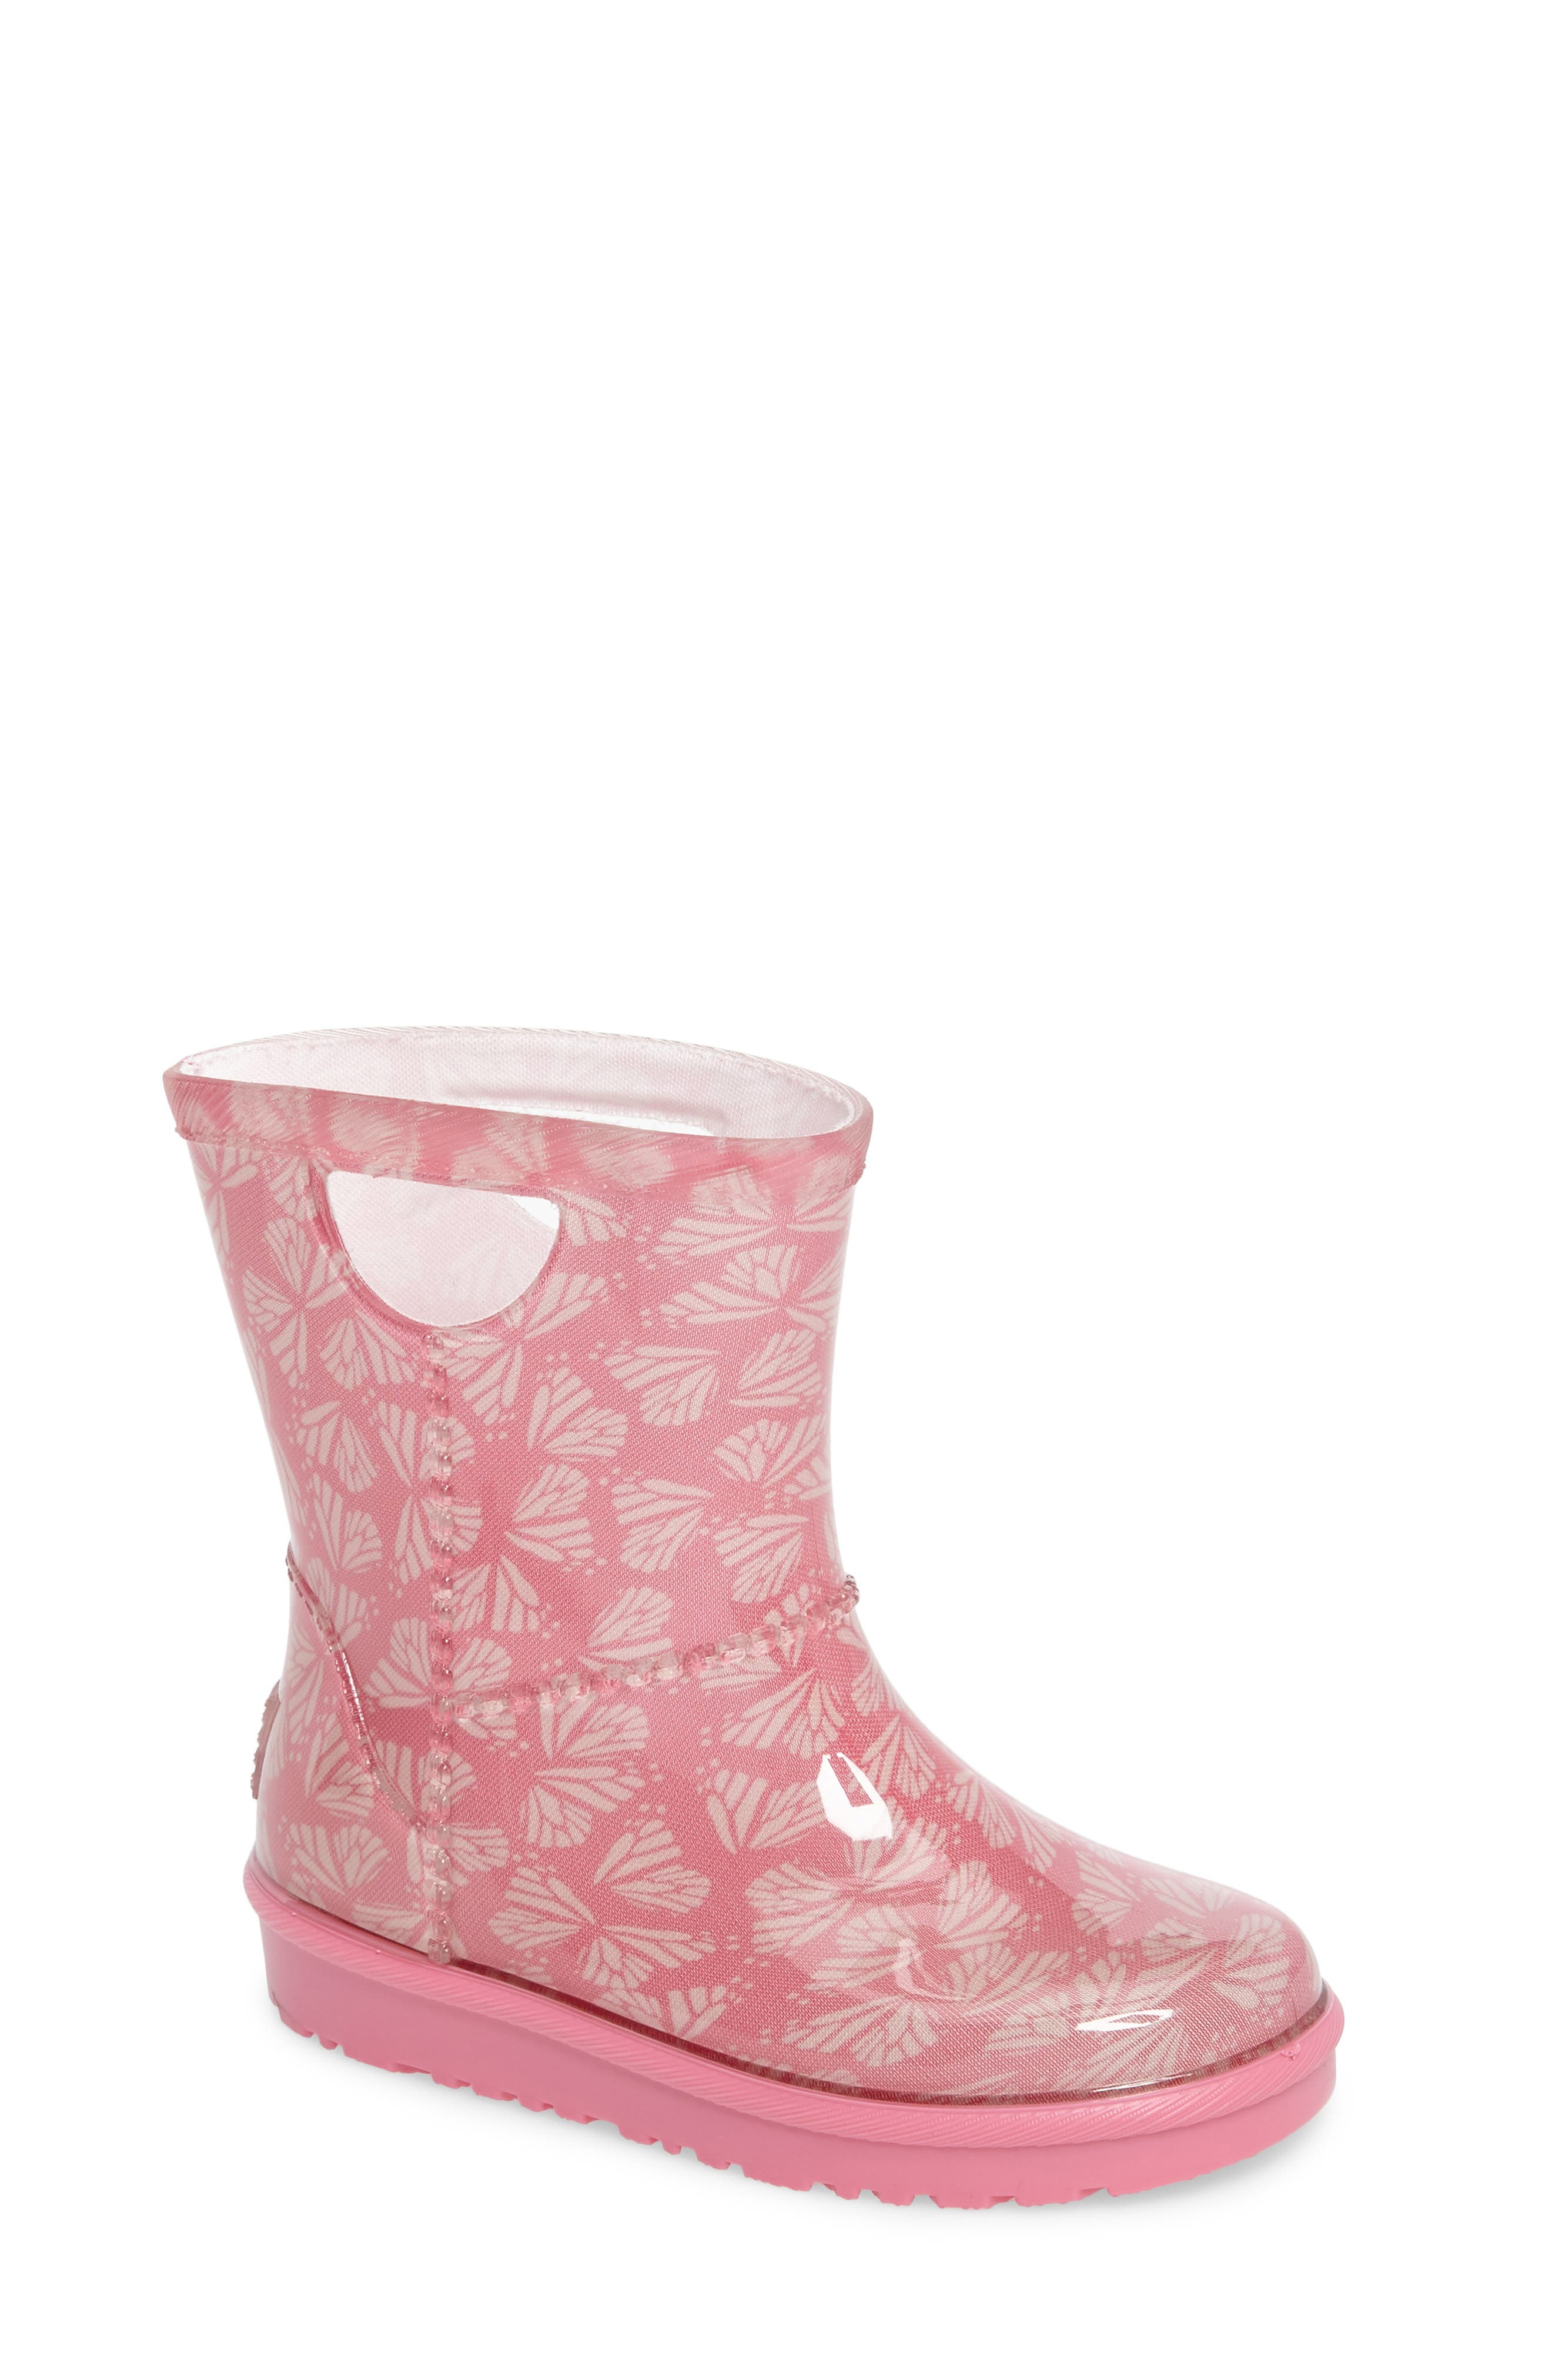 Main Image - UGG® Rahjee Rain Boot (Walker & Toddler)